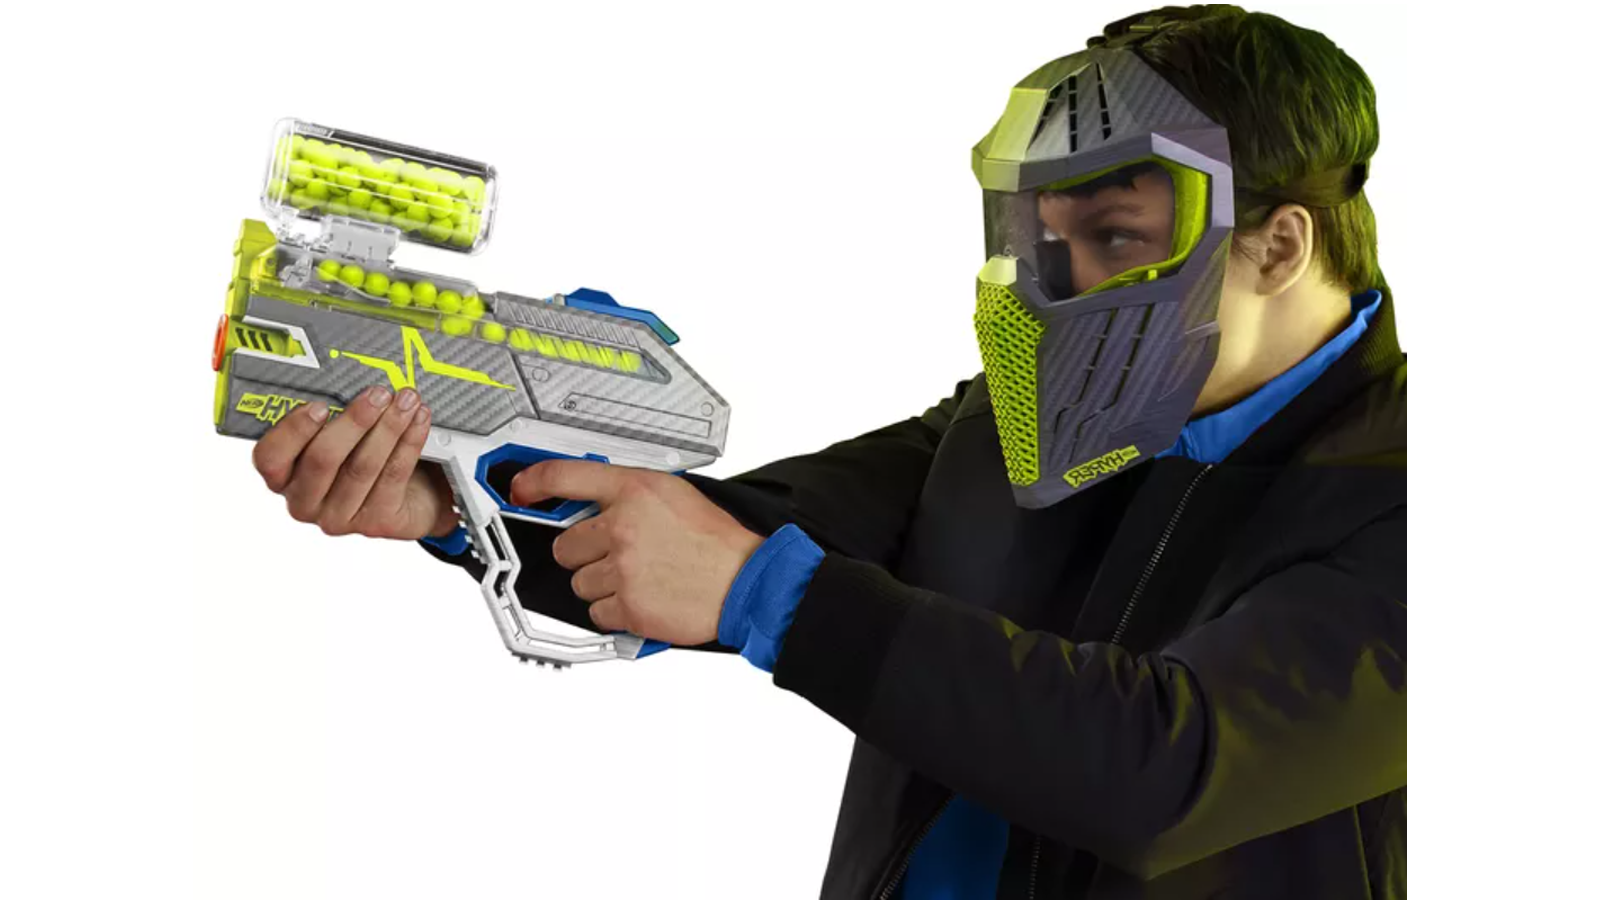 Person holding one of the new Nerf Hyper blasters with a protective mask on